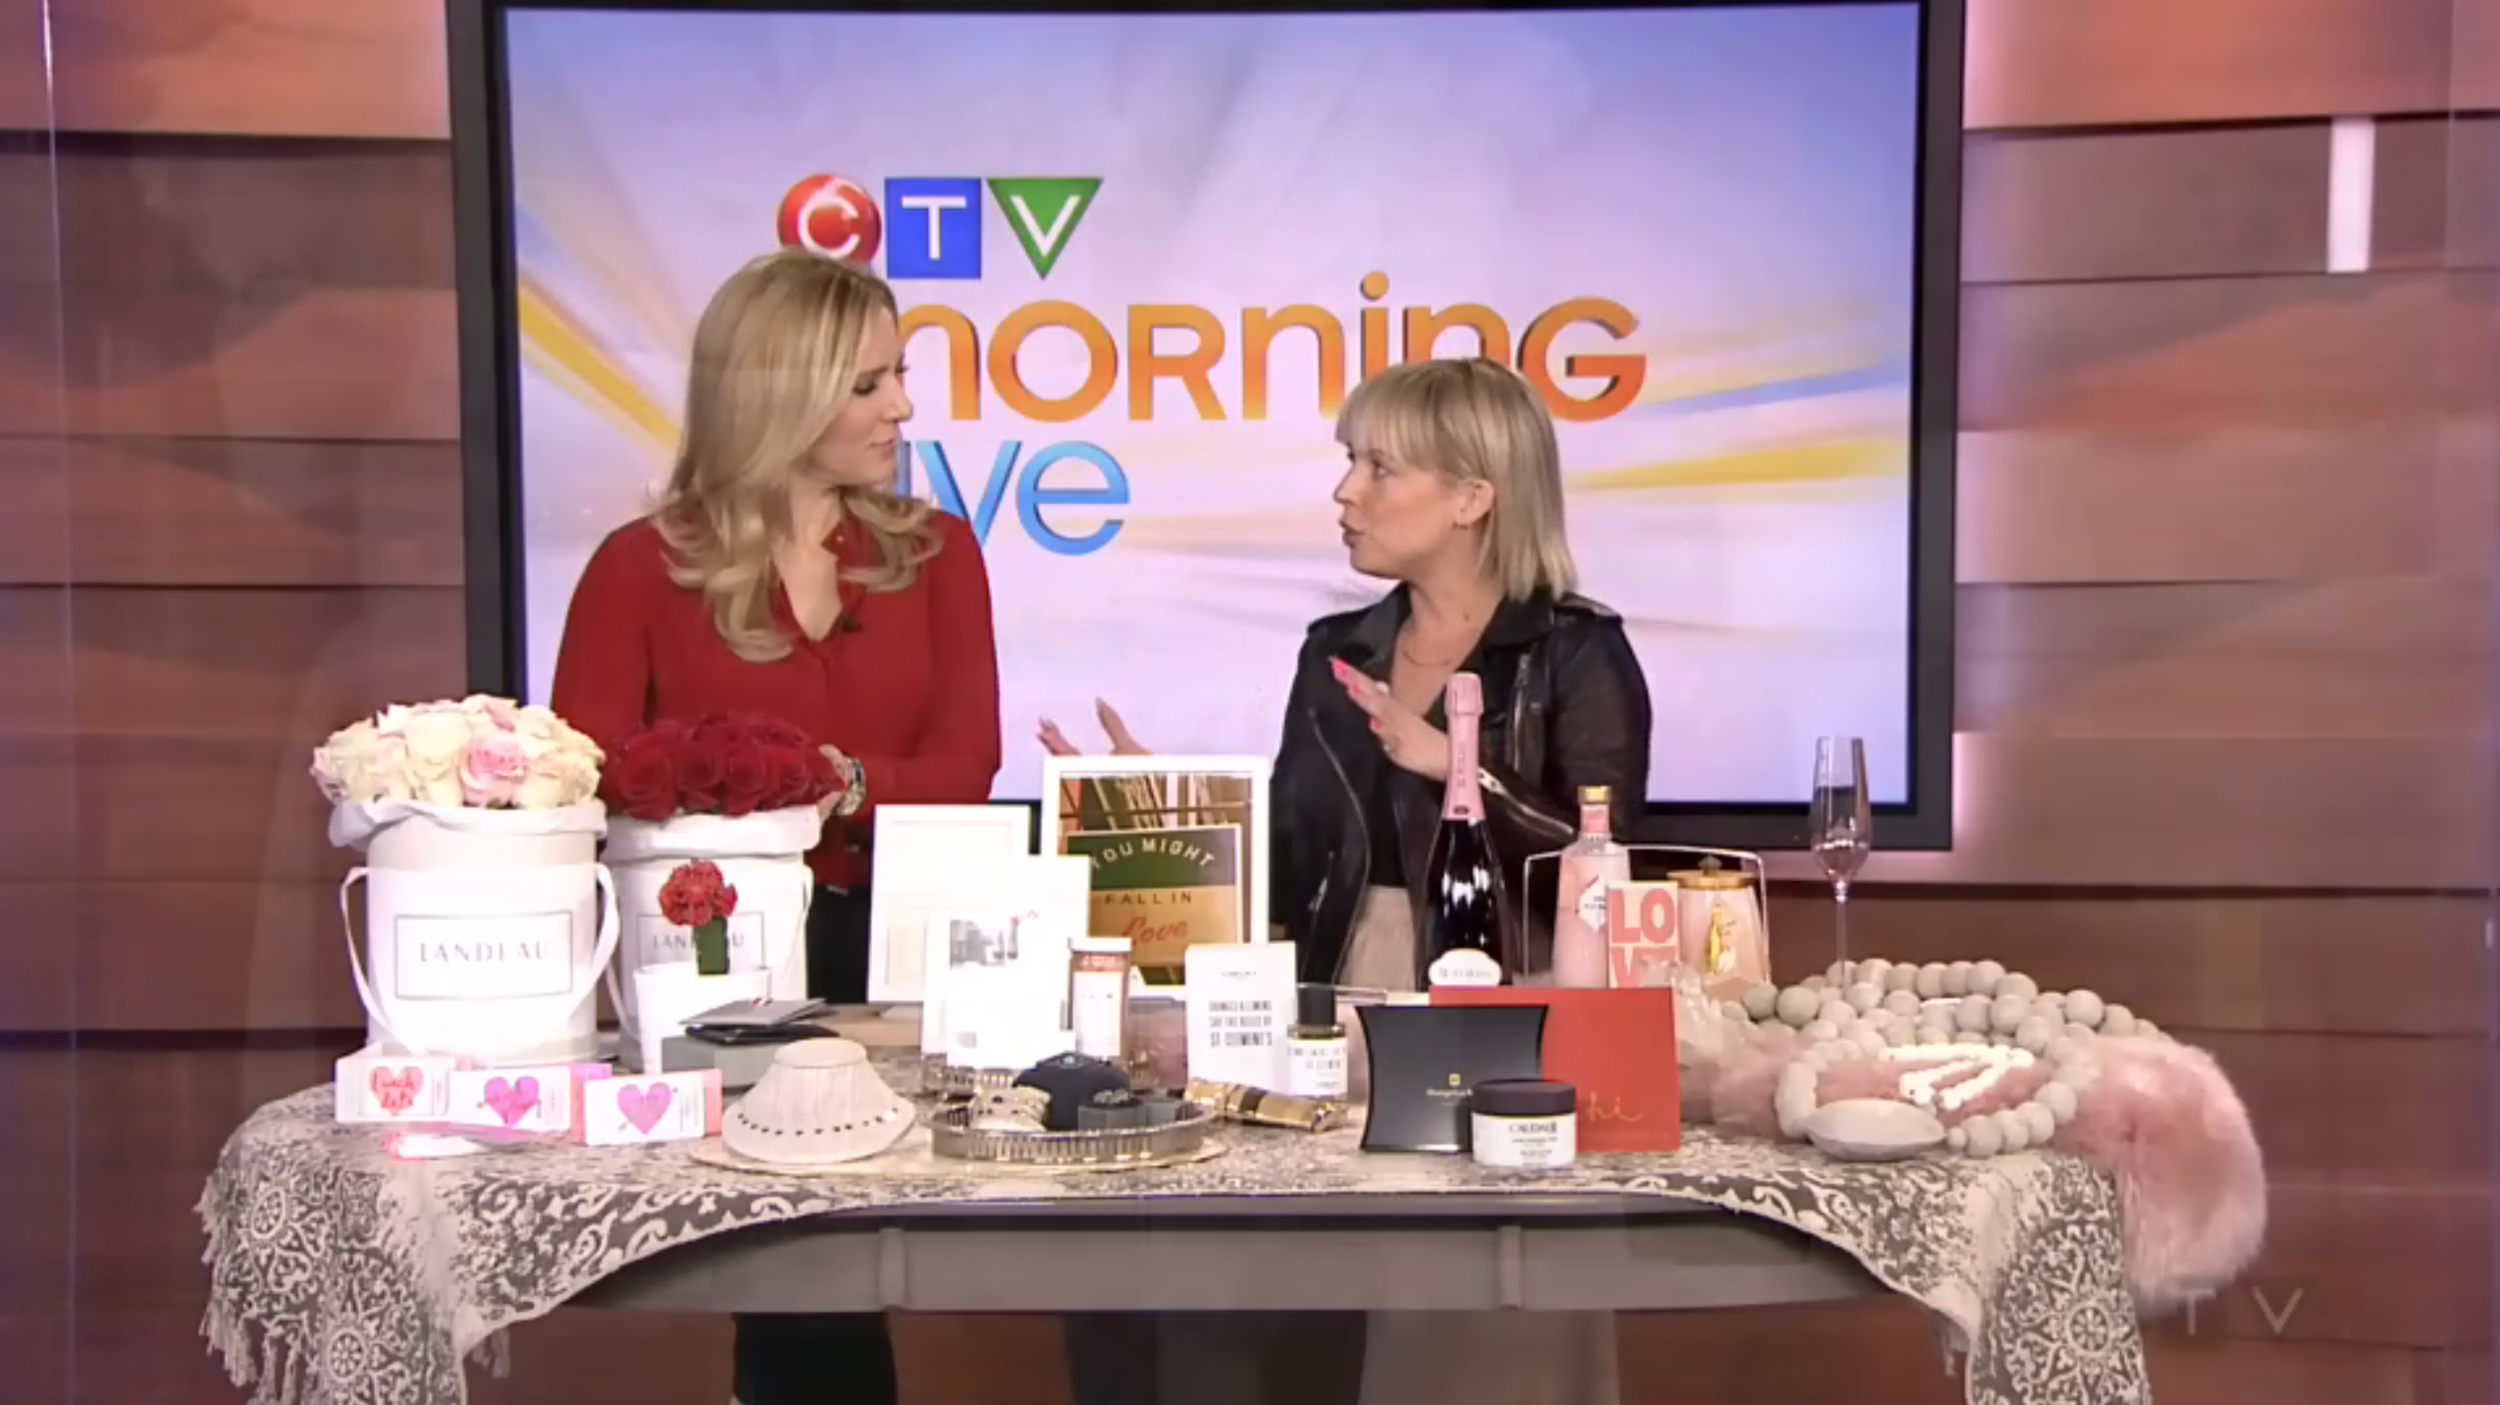 CTV Morning Live: Last minute Valentine's Day gifts for Him and Her